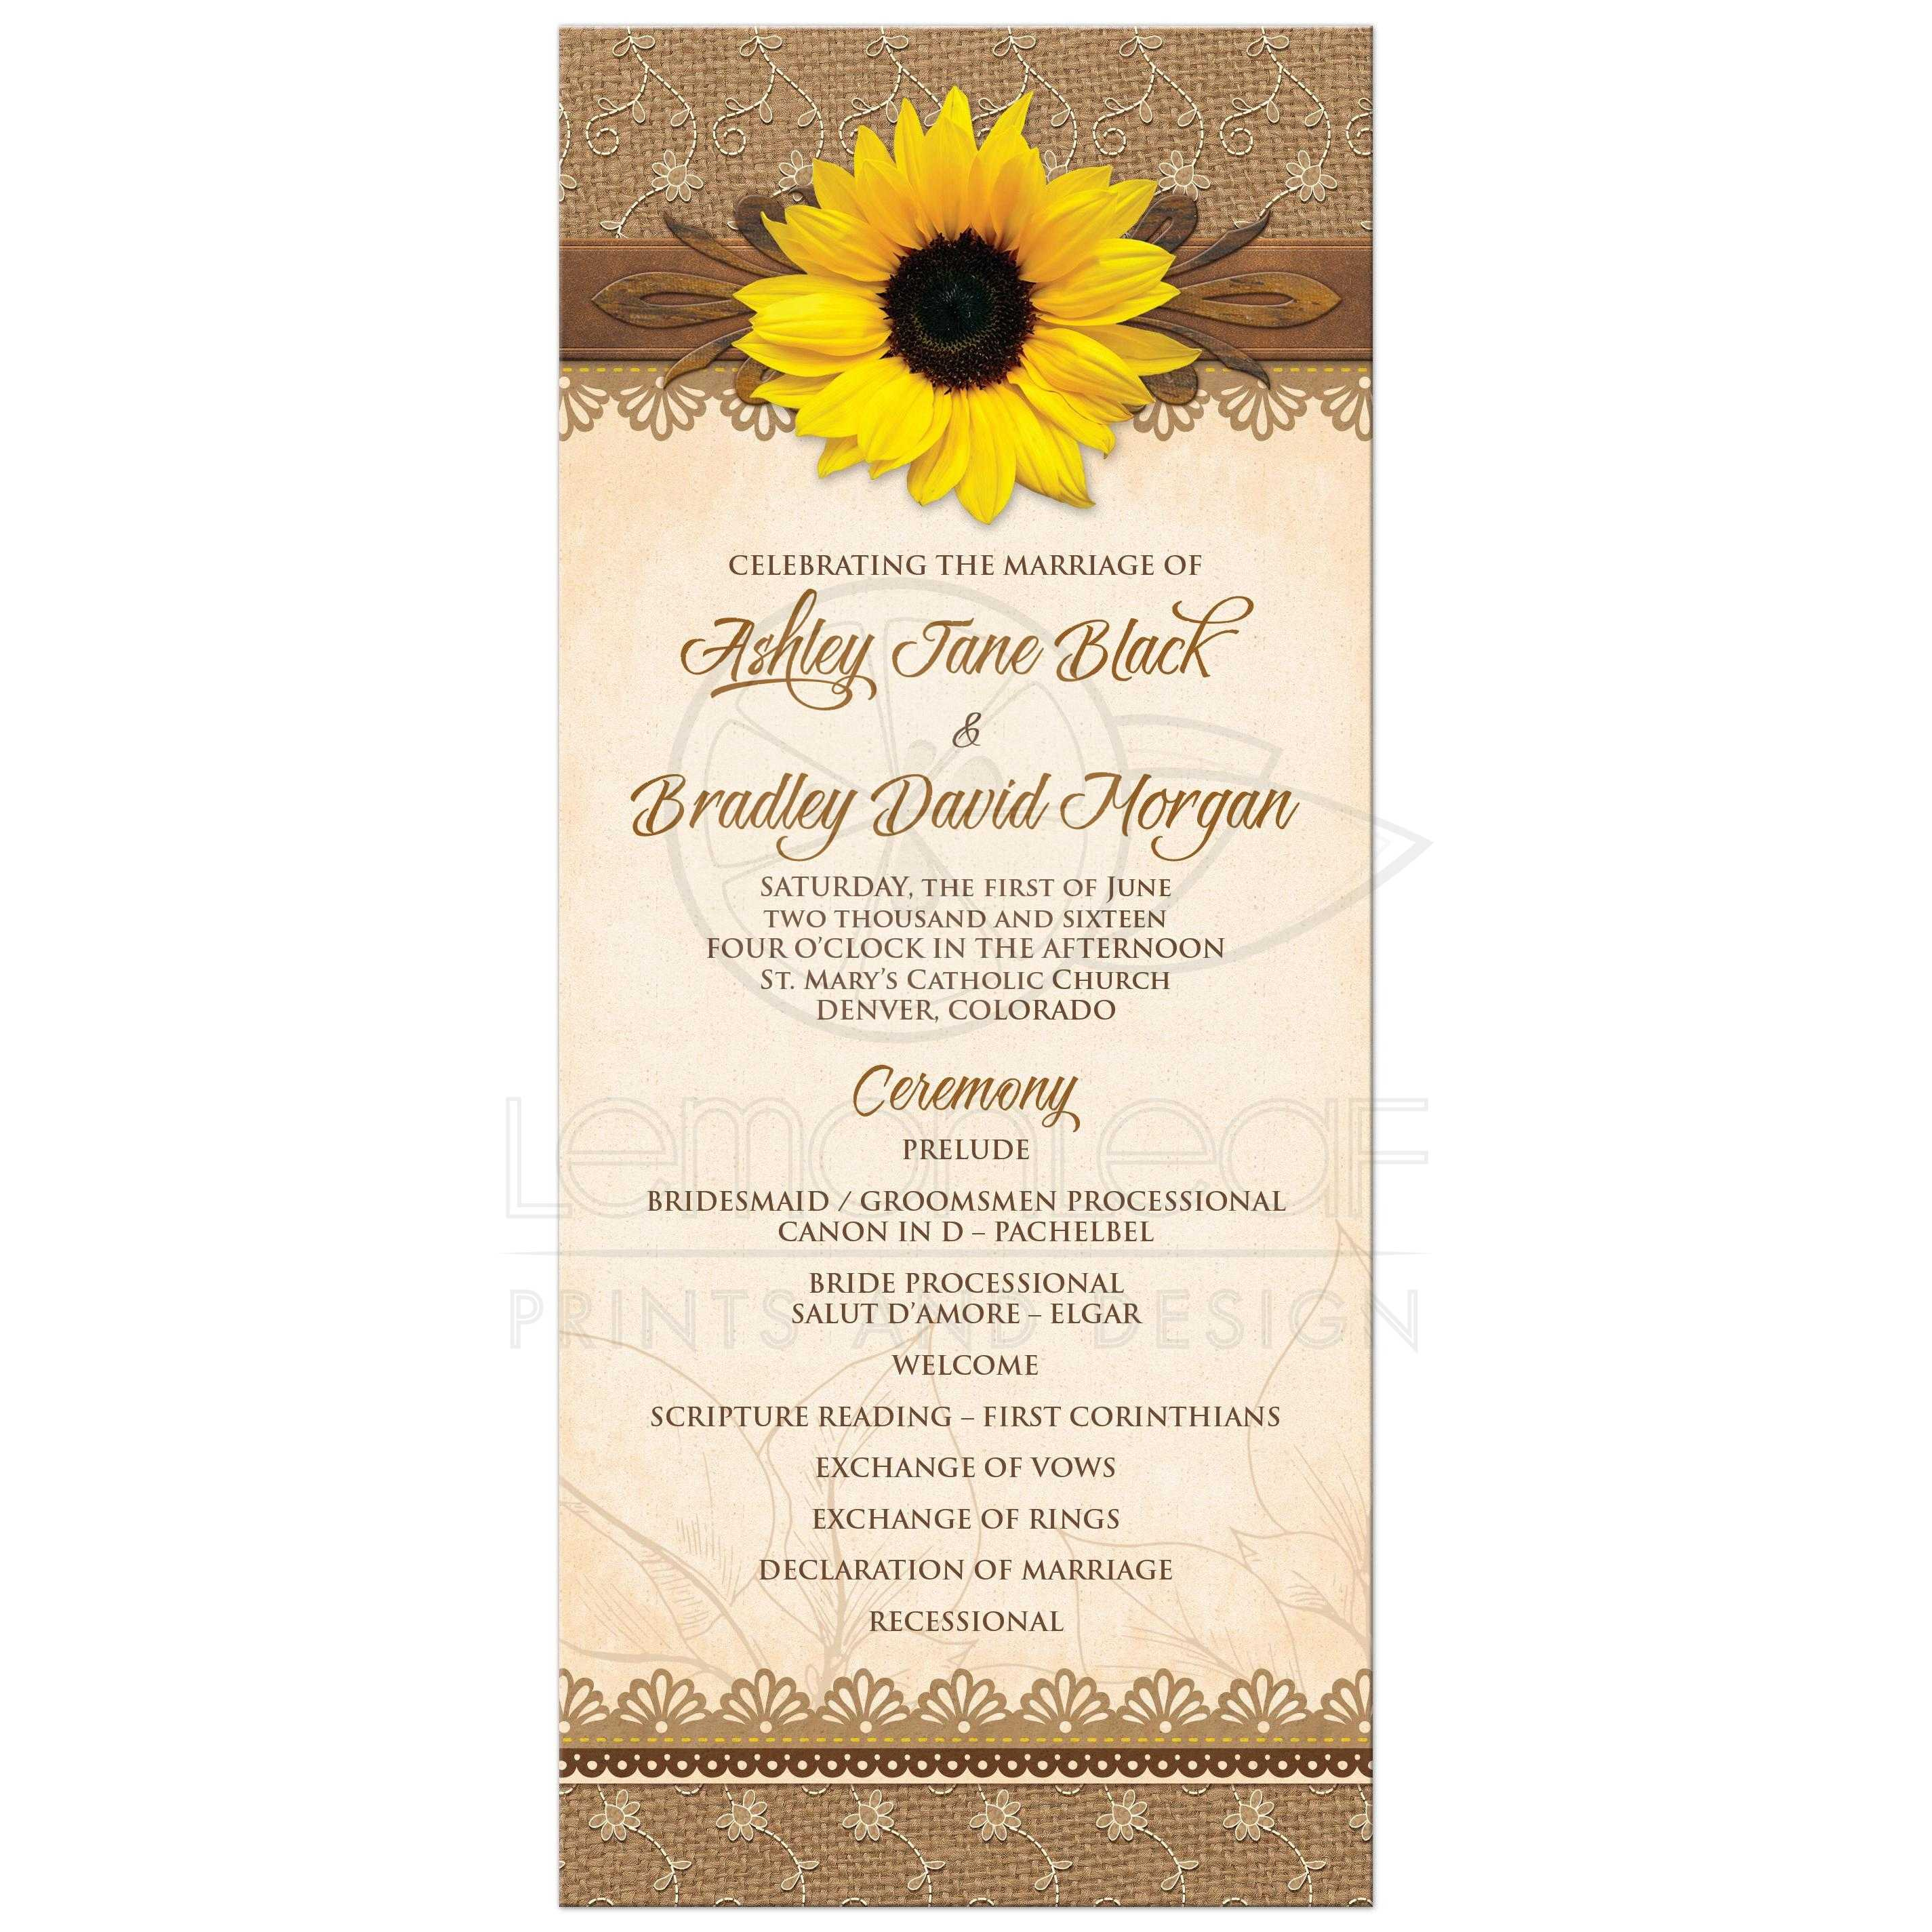 wedding program rustic sunflower burlap lace wood